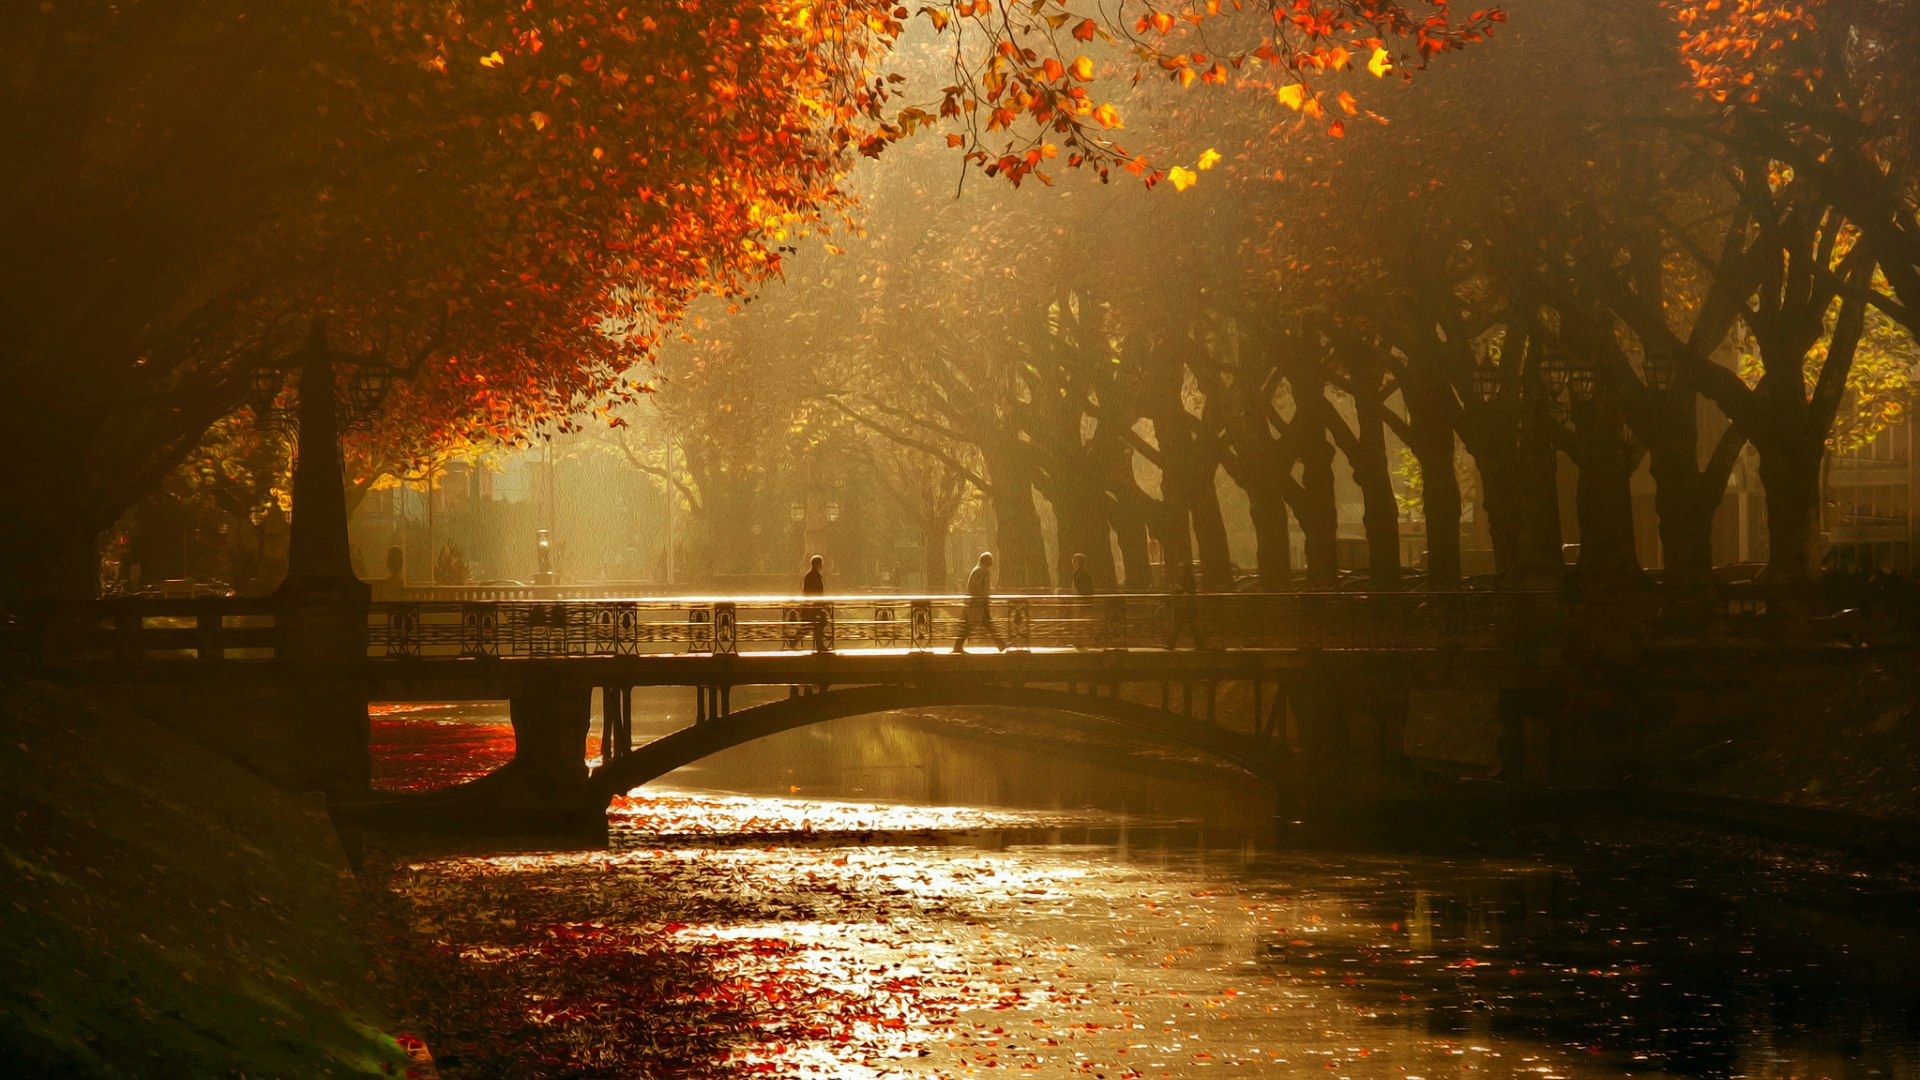 Fall Wallpaper With Dogs K 246 Nigsallee Dusseldorf Germany Wallpapers And Images